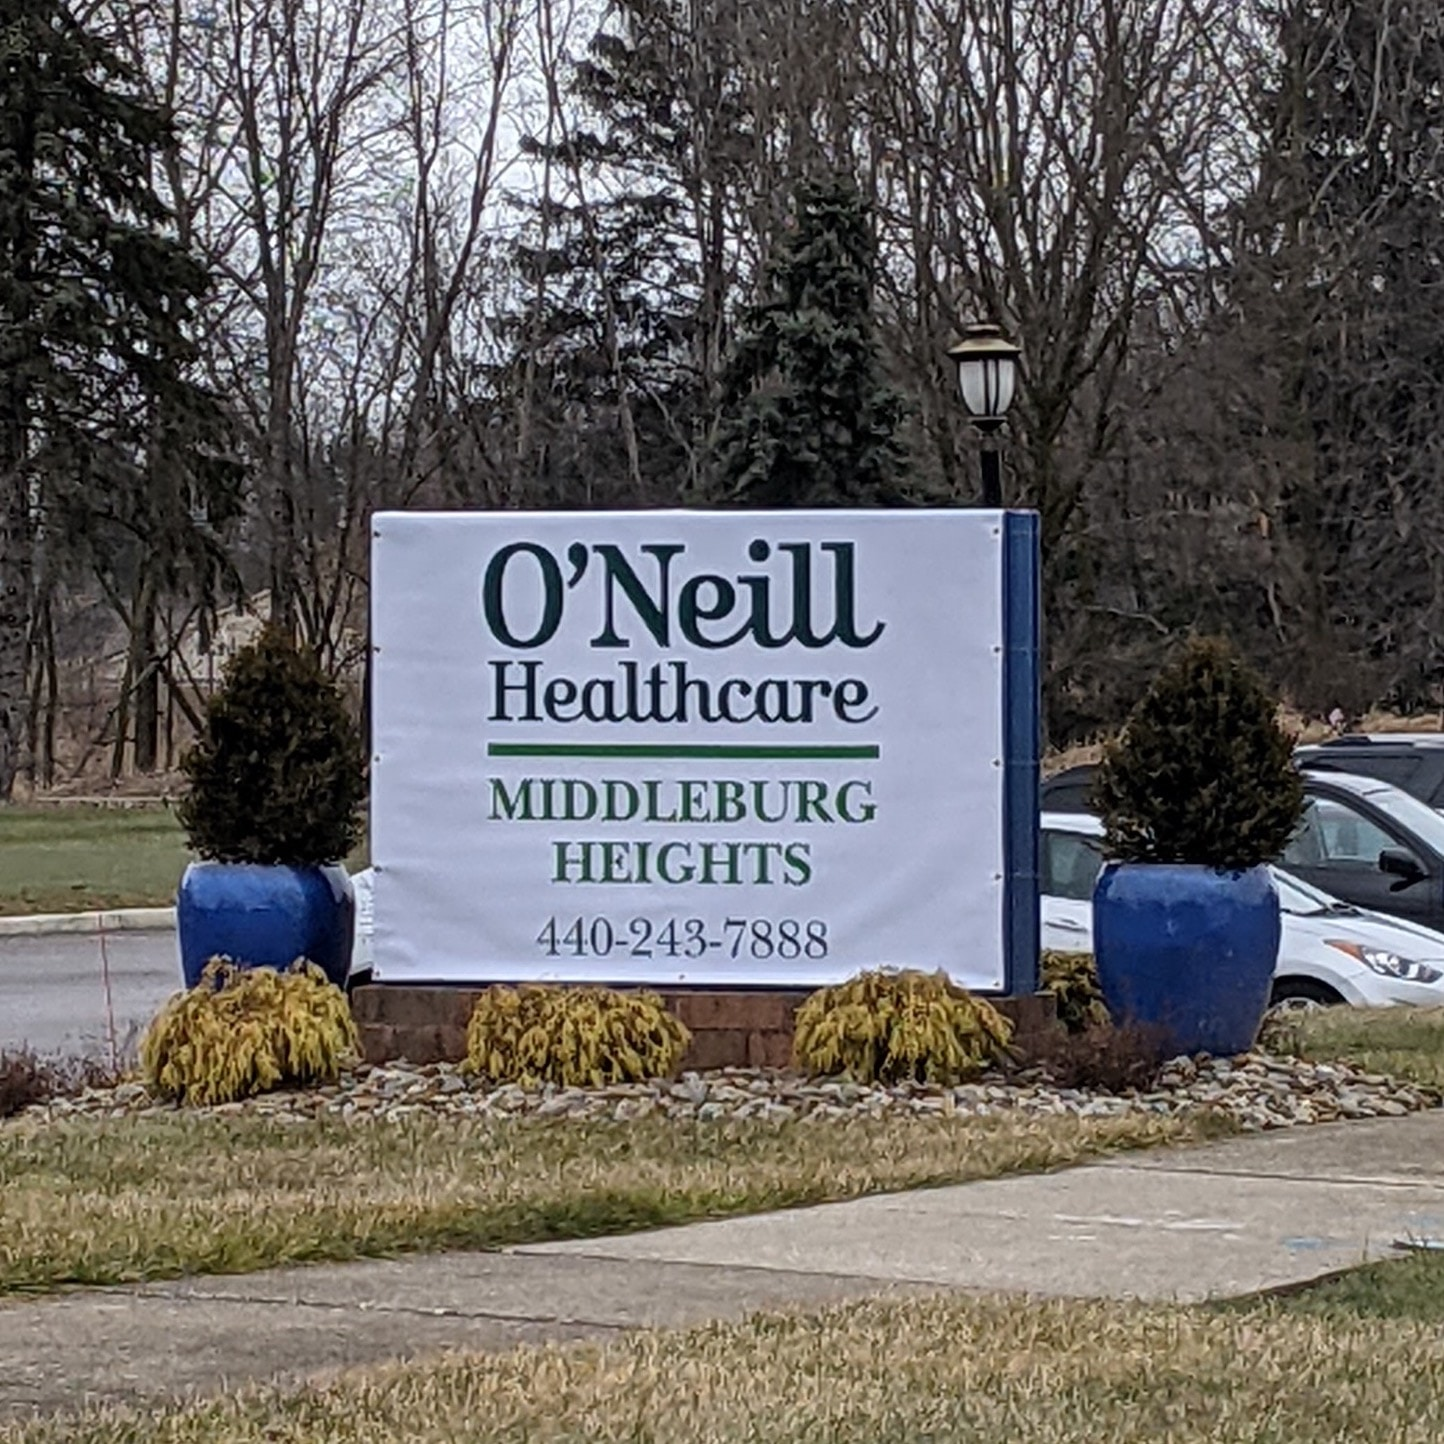 O'Neill Healthcare Middleburg Heights, formally Accord Care Community Middleburg Heights, Century Oak Community Care